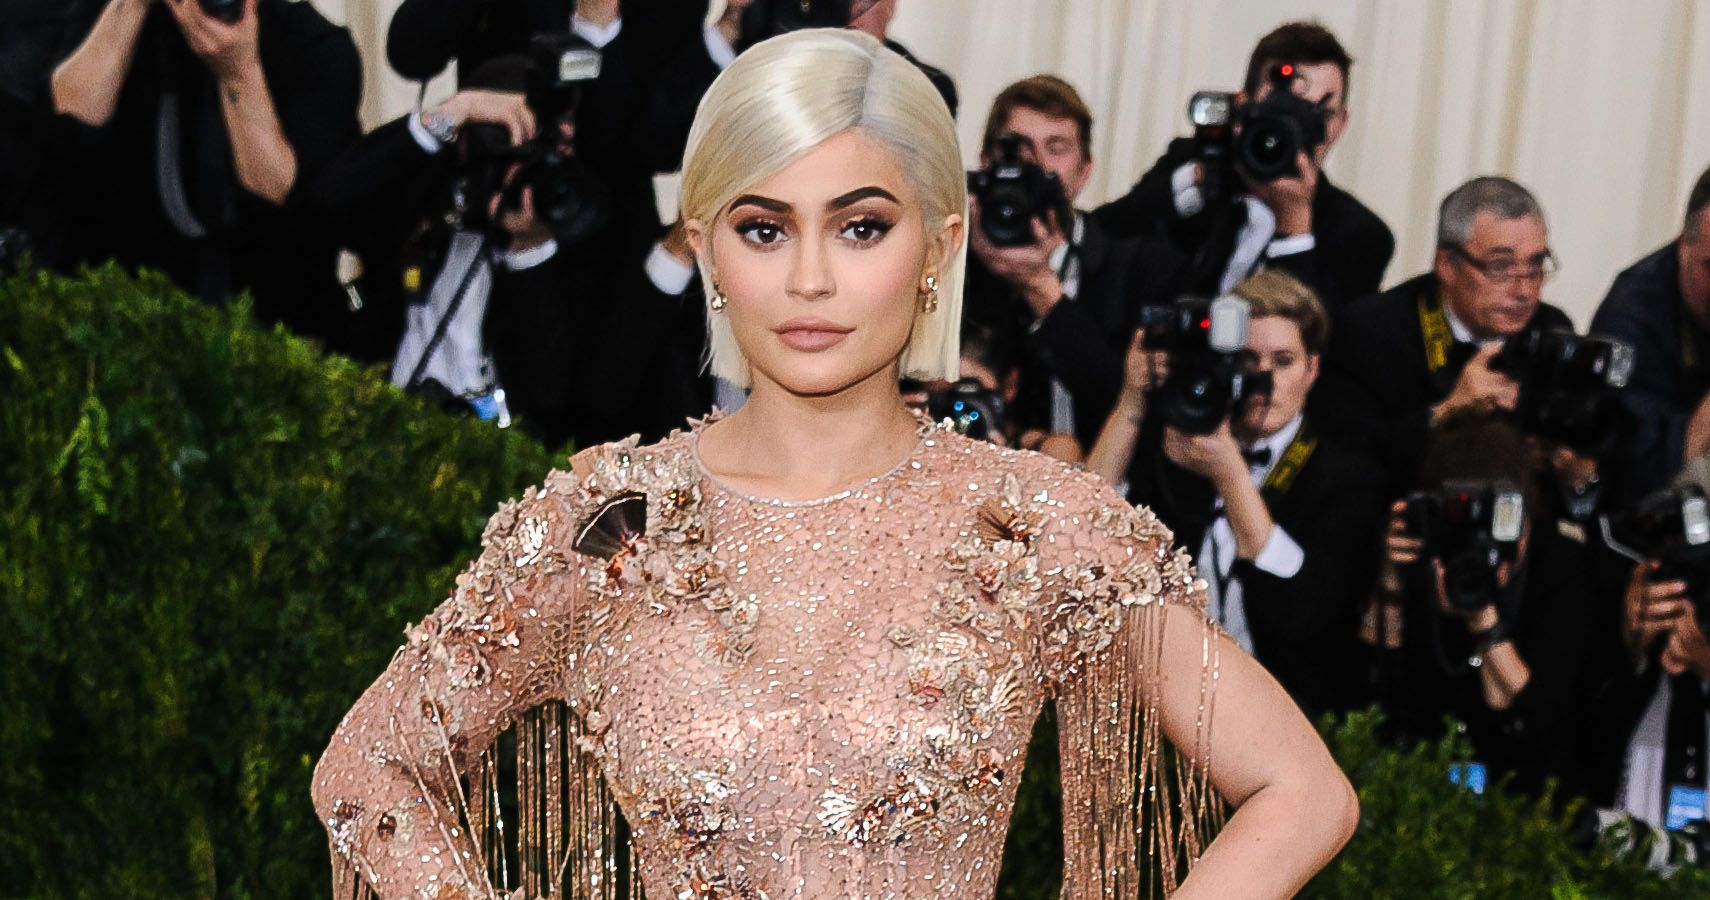 Kylie Jenner Prepares To Dominate Swimwear Sales With Her New Fashion Line